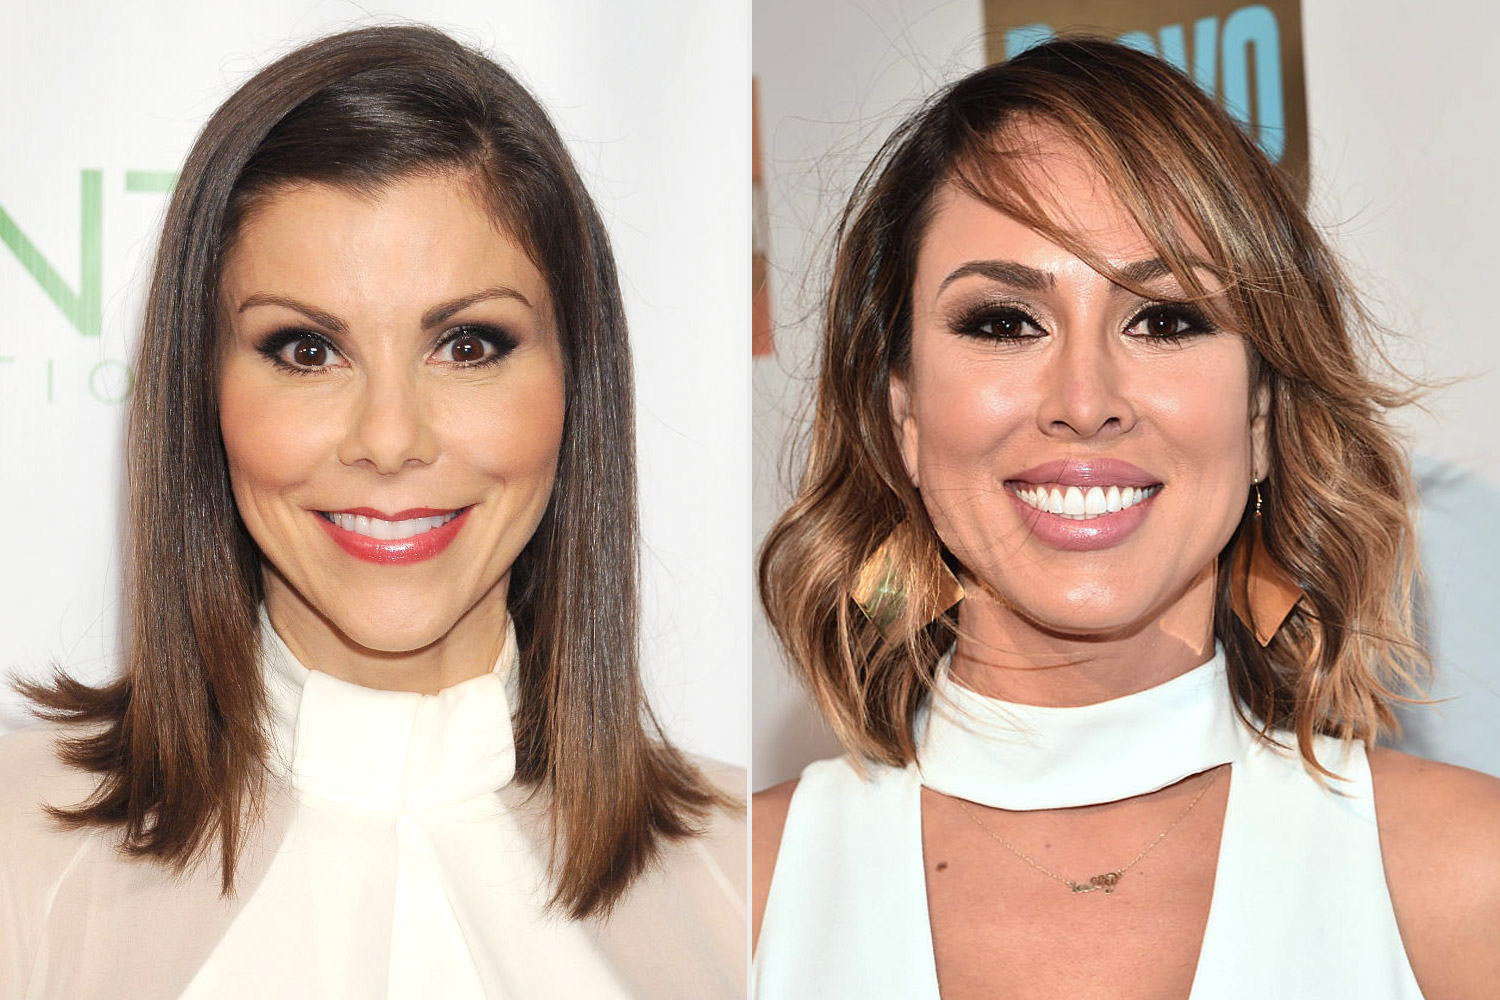 Kelly Dodd and Heather Dubrow